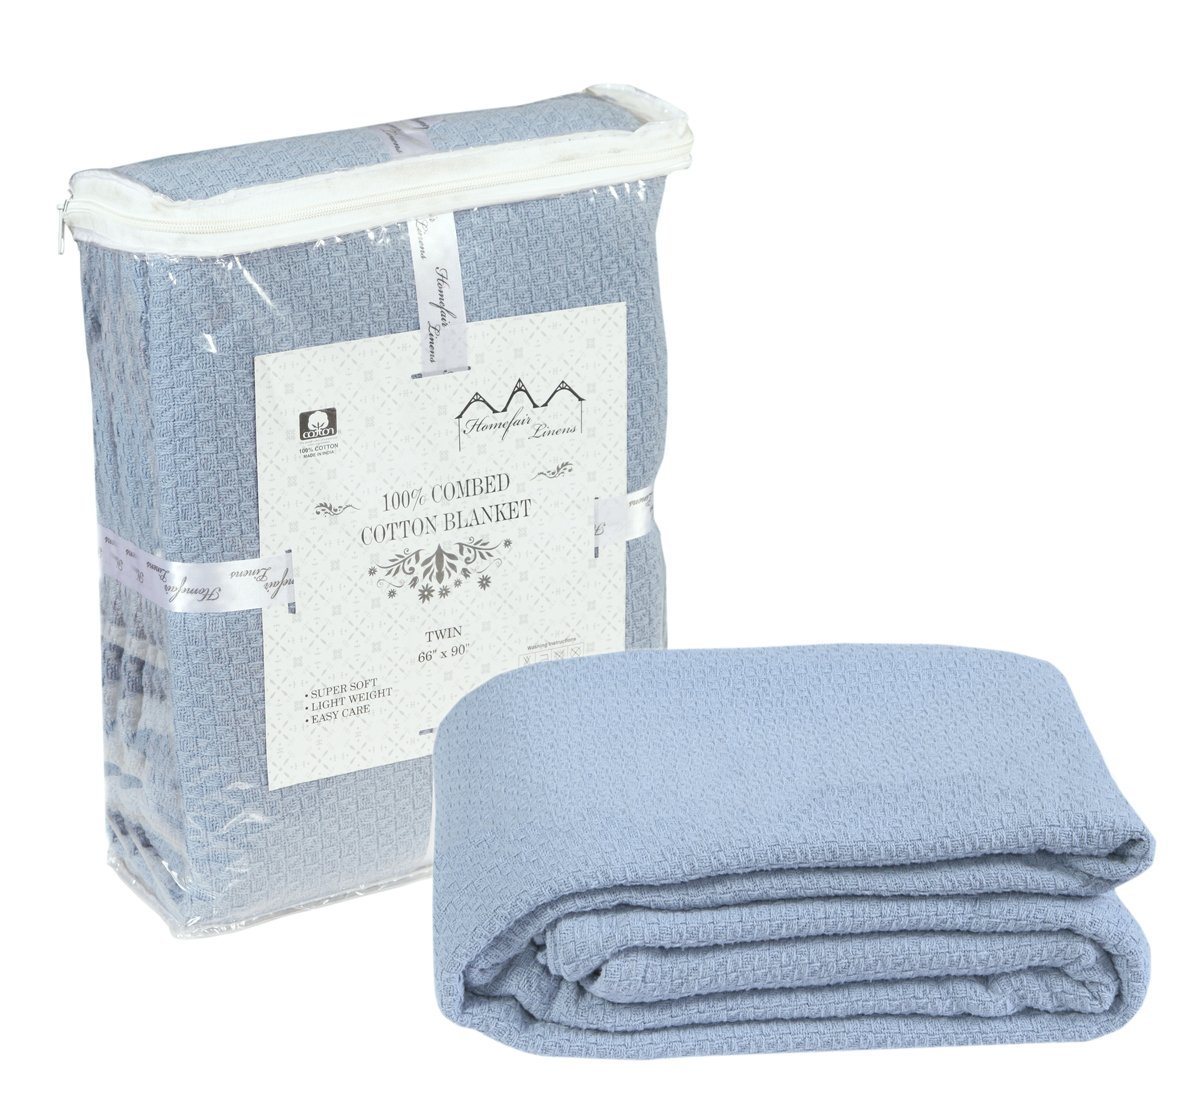 Get Quotations · 100% Premium Soft Cotton Blanket- Queen Blanket - Thermal  Blankets - Soft Cozy   1d39960b4